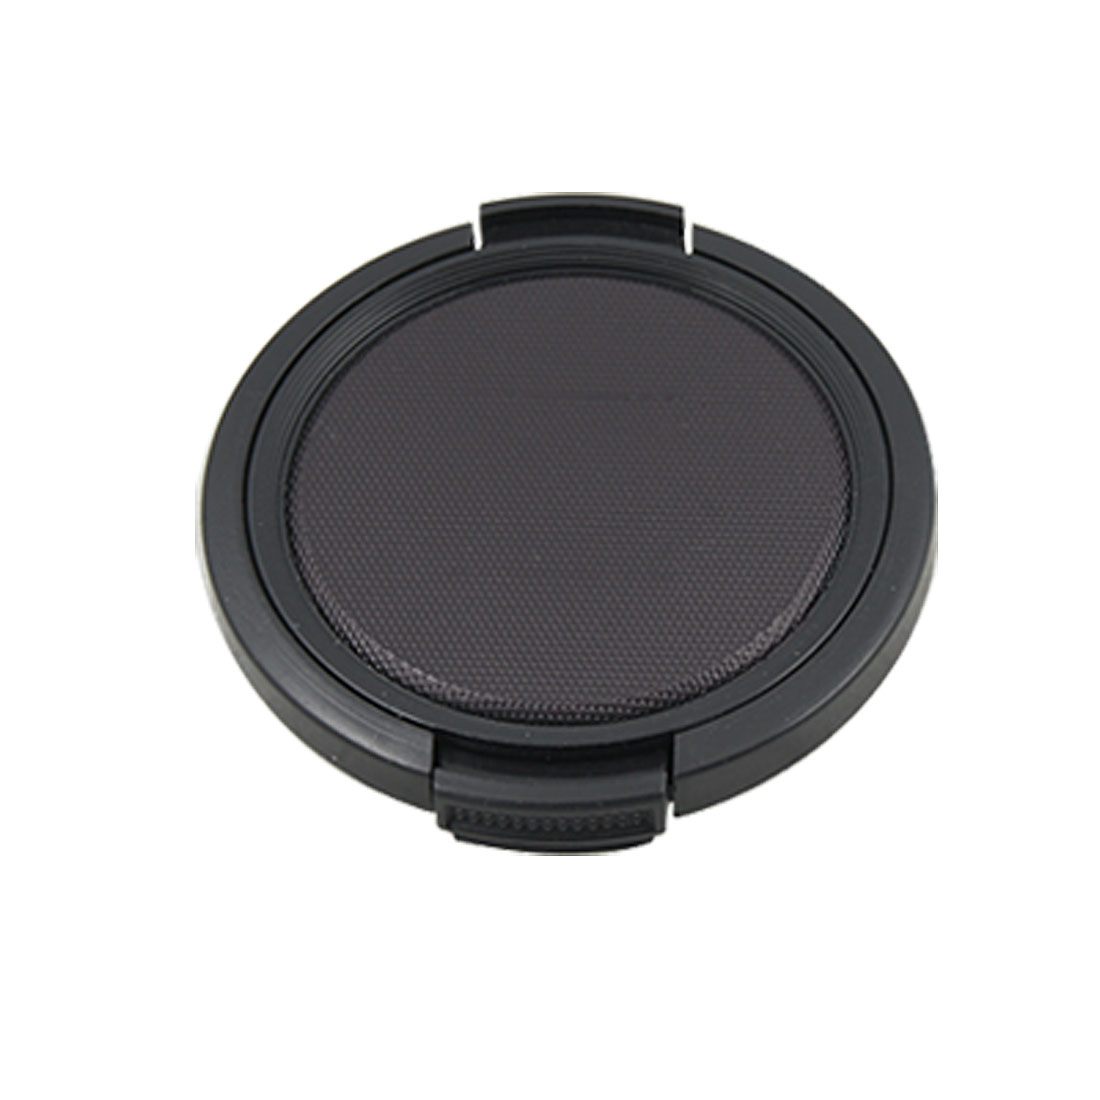 Textured Black Plastic 52mm Dia Lens Cover Cap for Camera